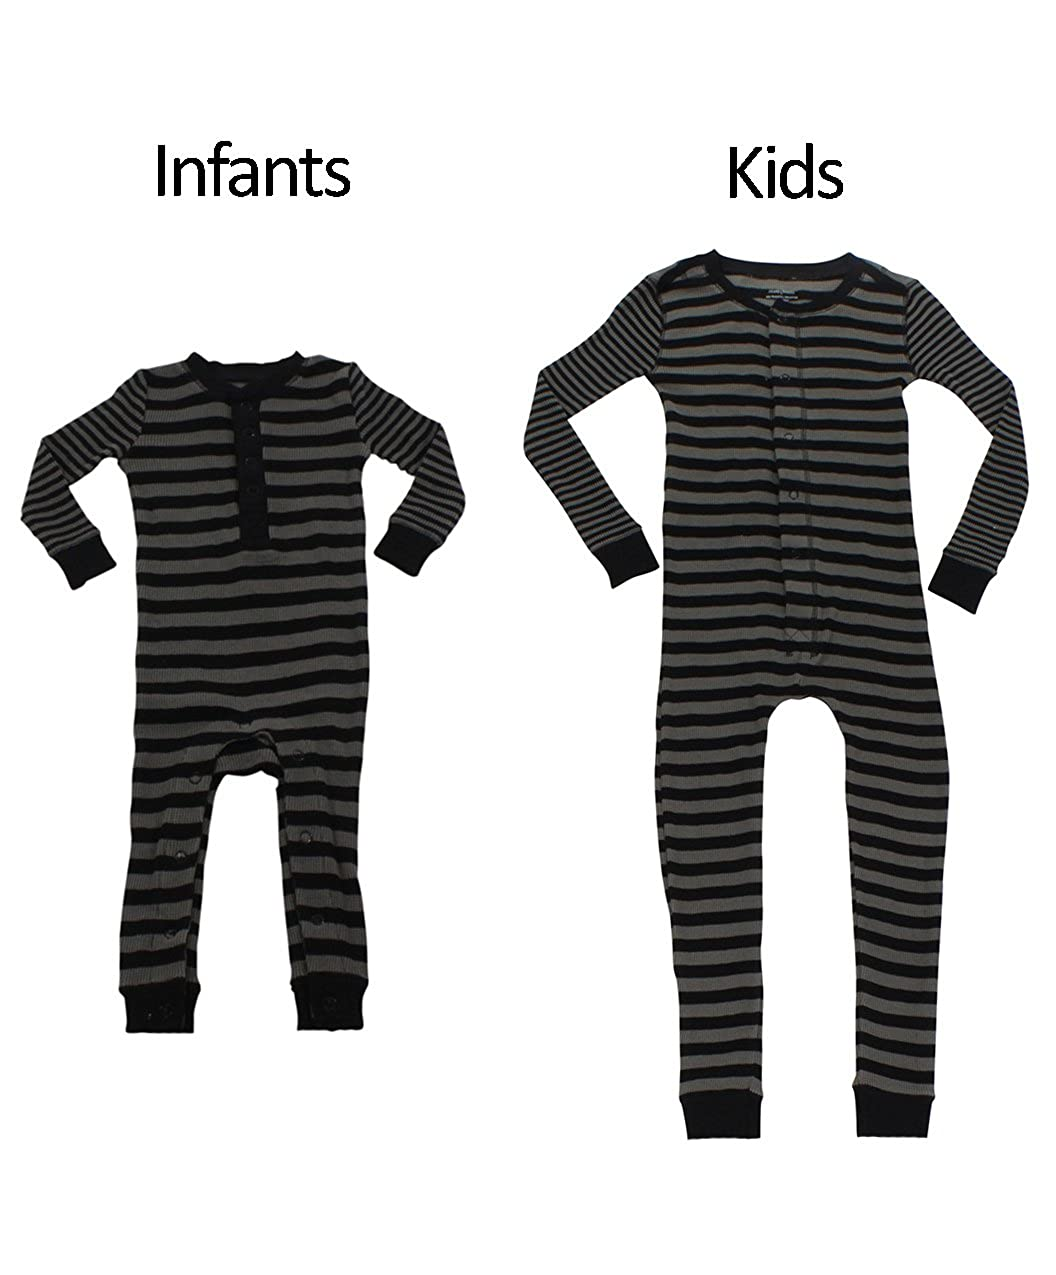 641584ac1 Sleepyheads Boys and Girls Thermal Union Suit Without Feet Black ...